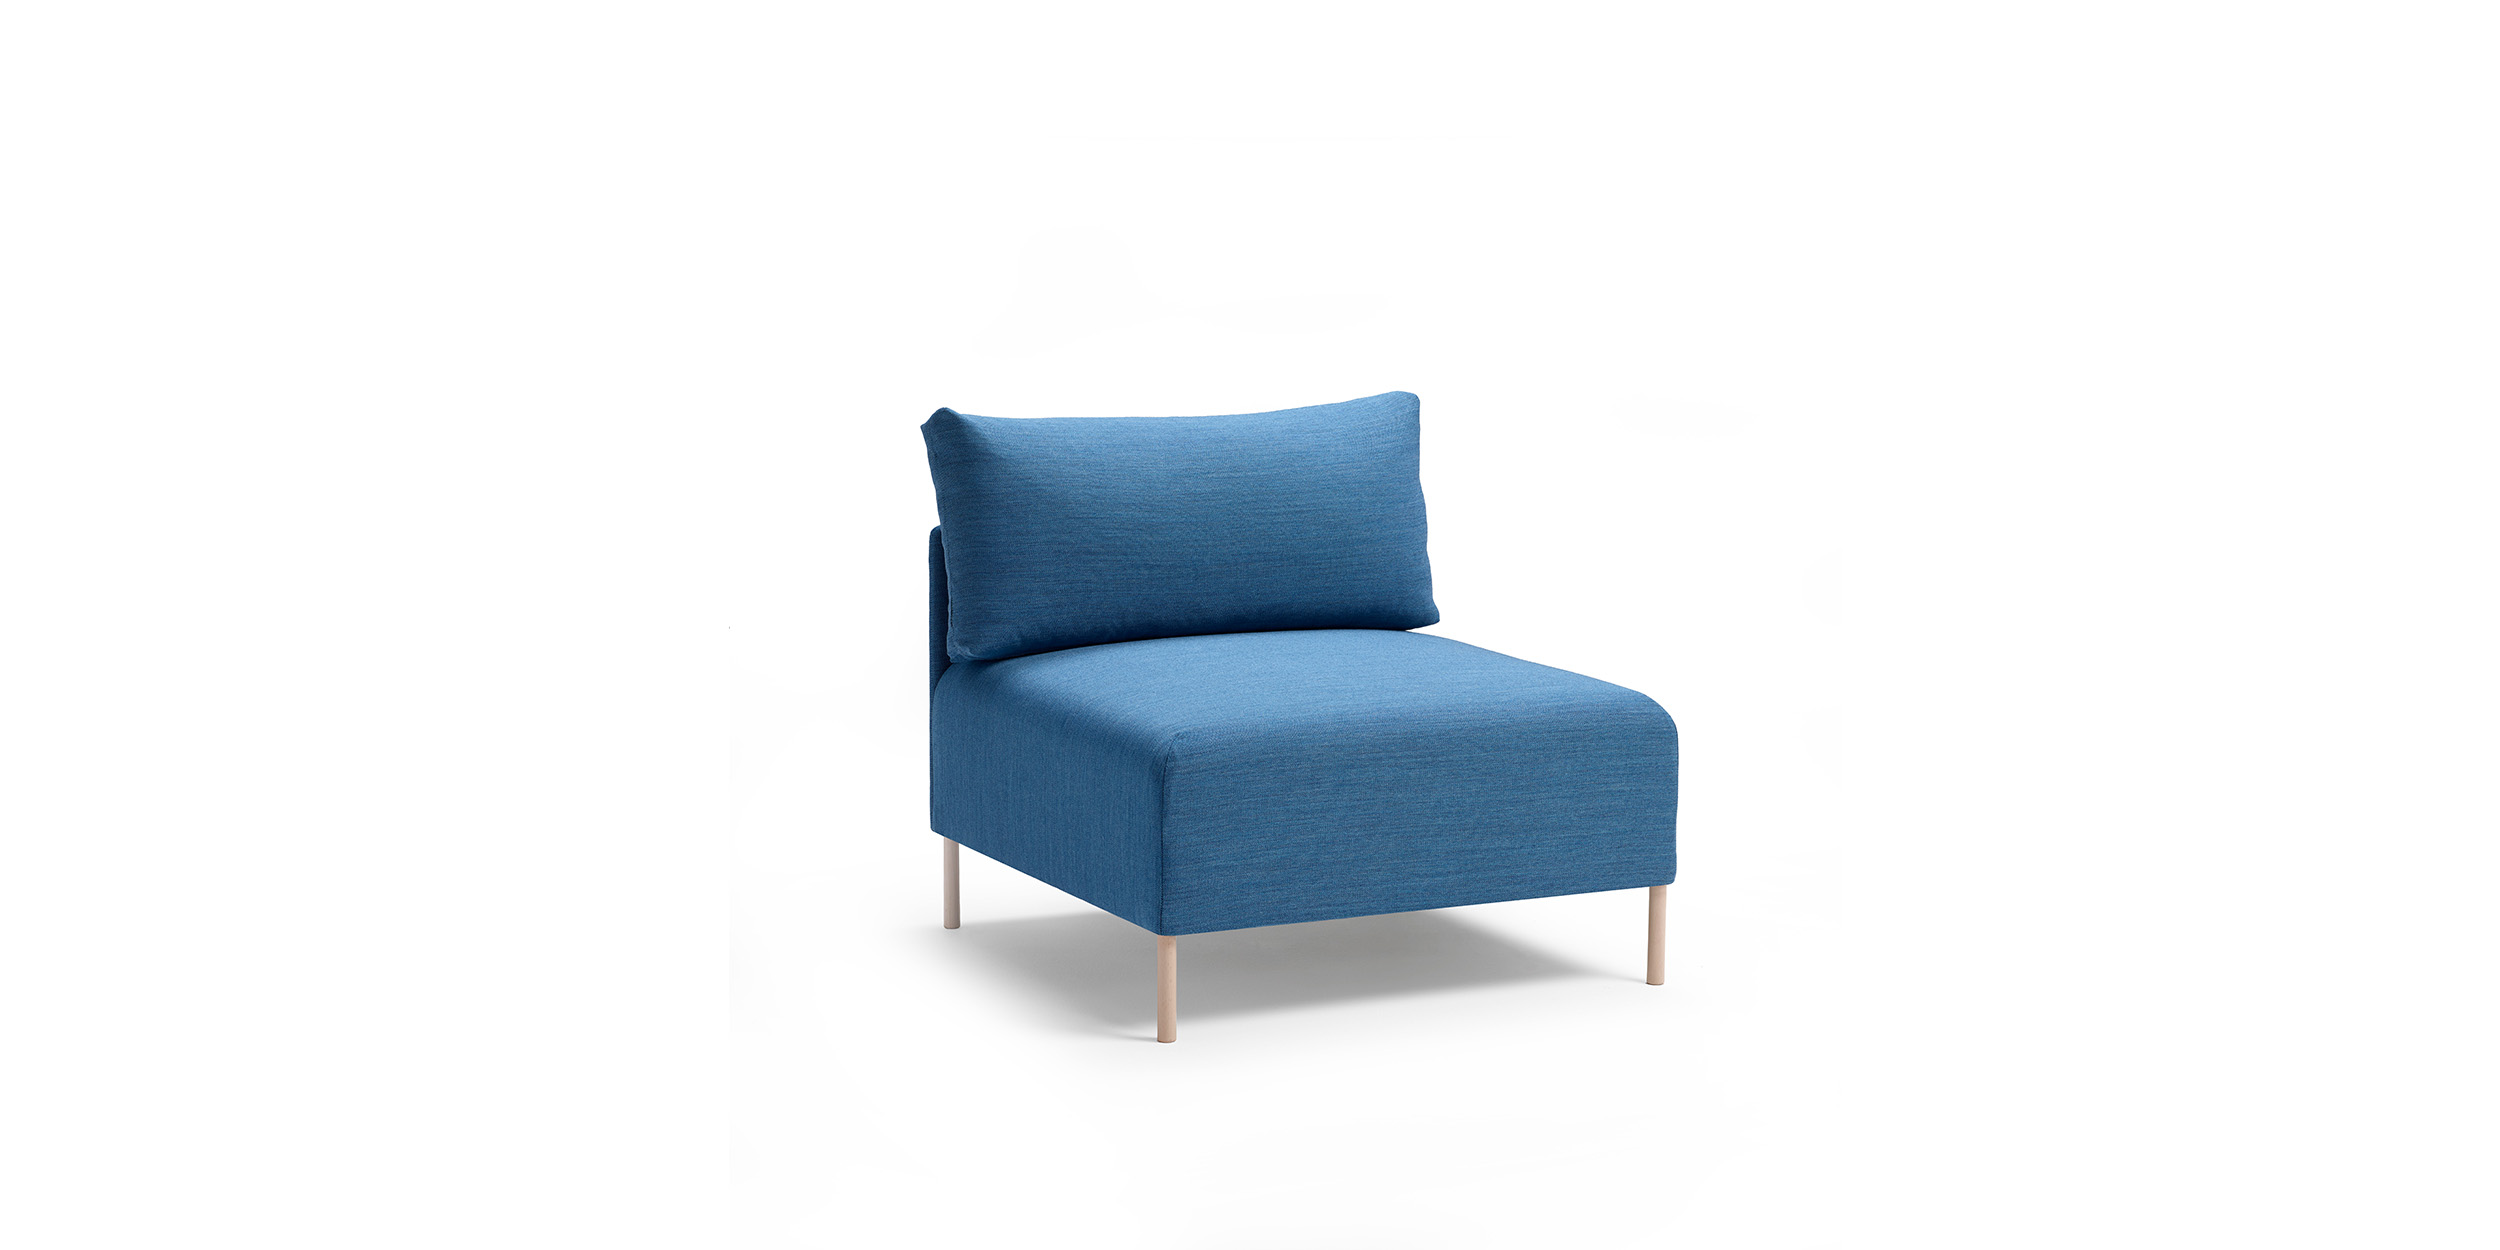 Blocks, 1-seater by Christophe Pillet